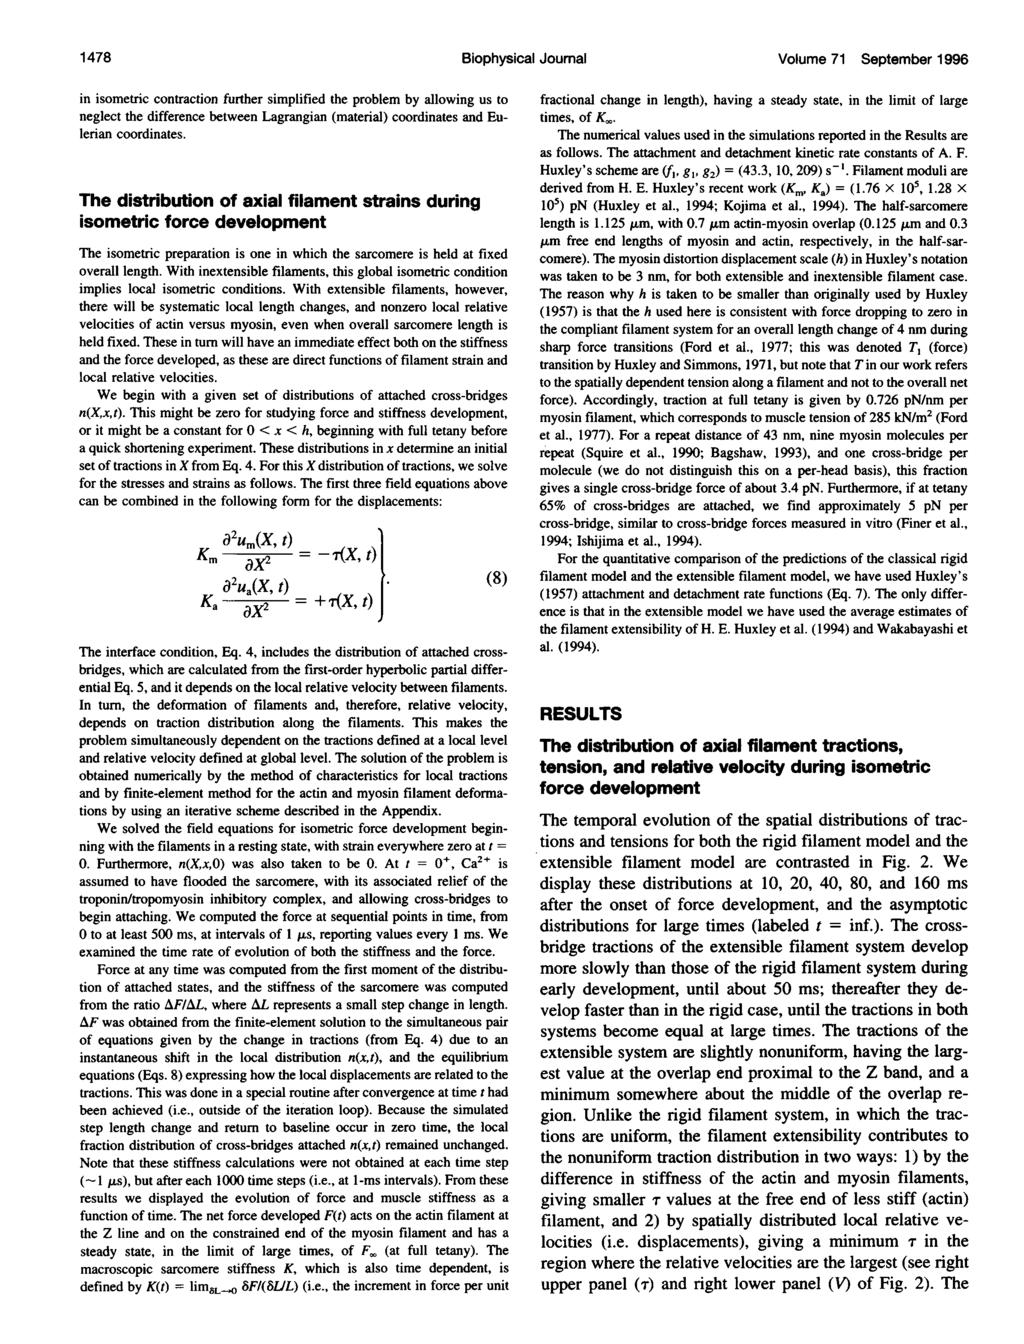 1 478 Biophysical Journal Volume 71 September 1996 in isometric contraction further simplified the problem by allowing us to neglect the difference between Lagrangian (material) coordinates and